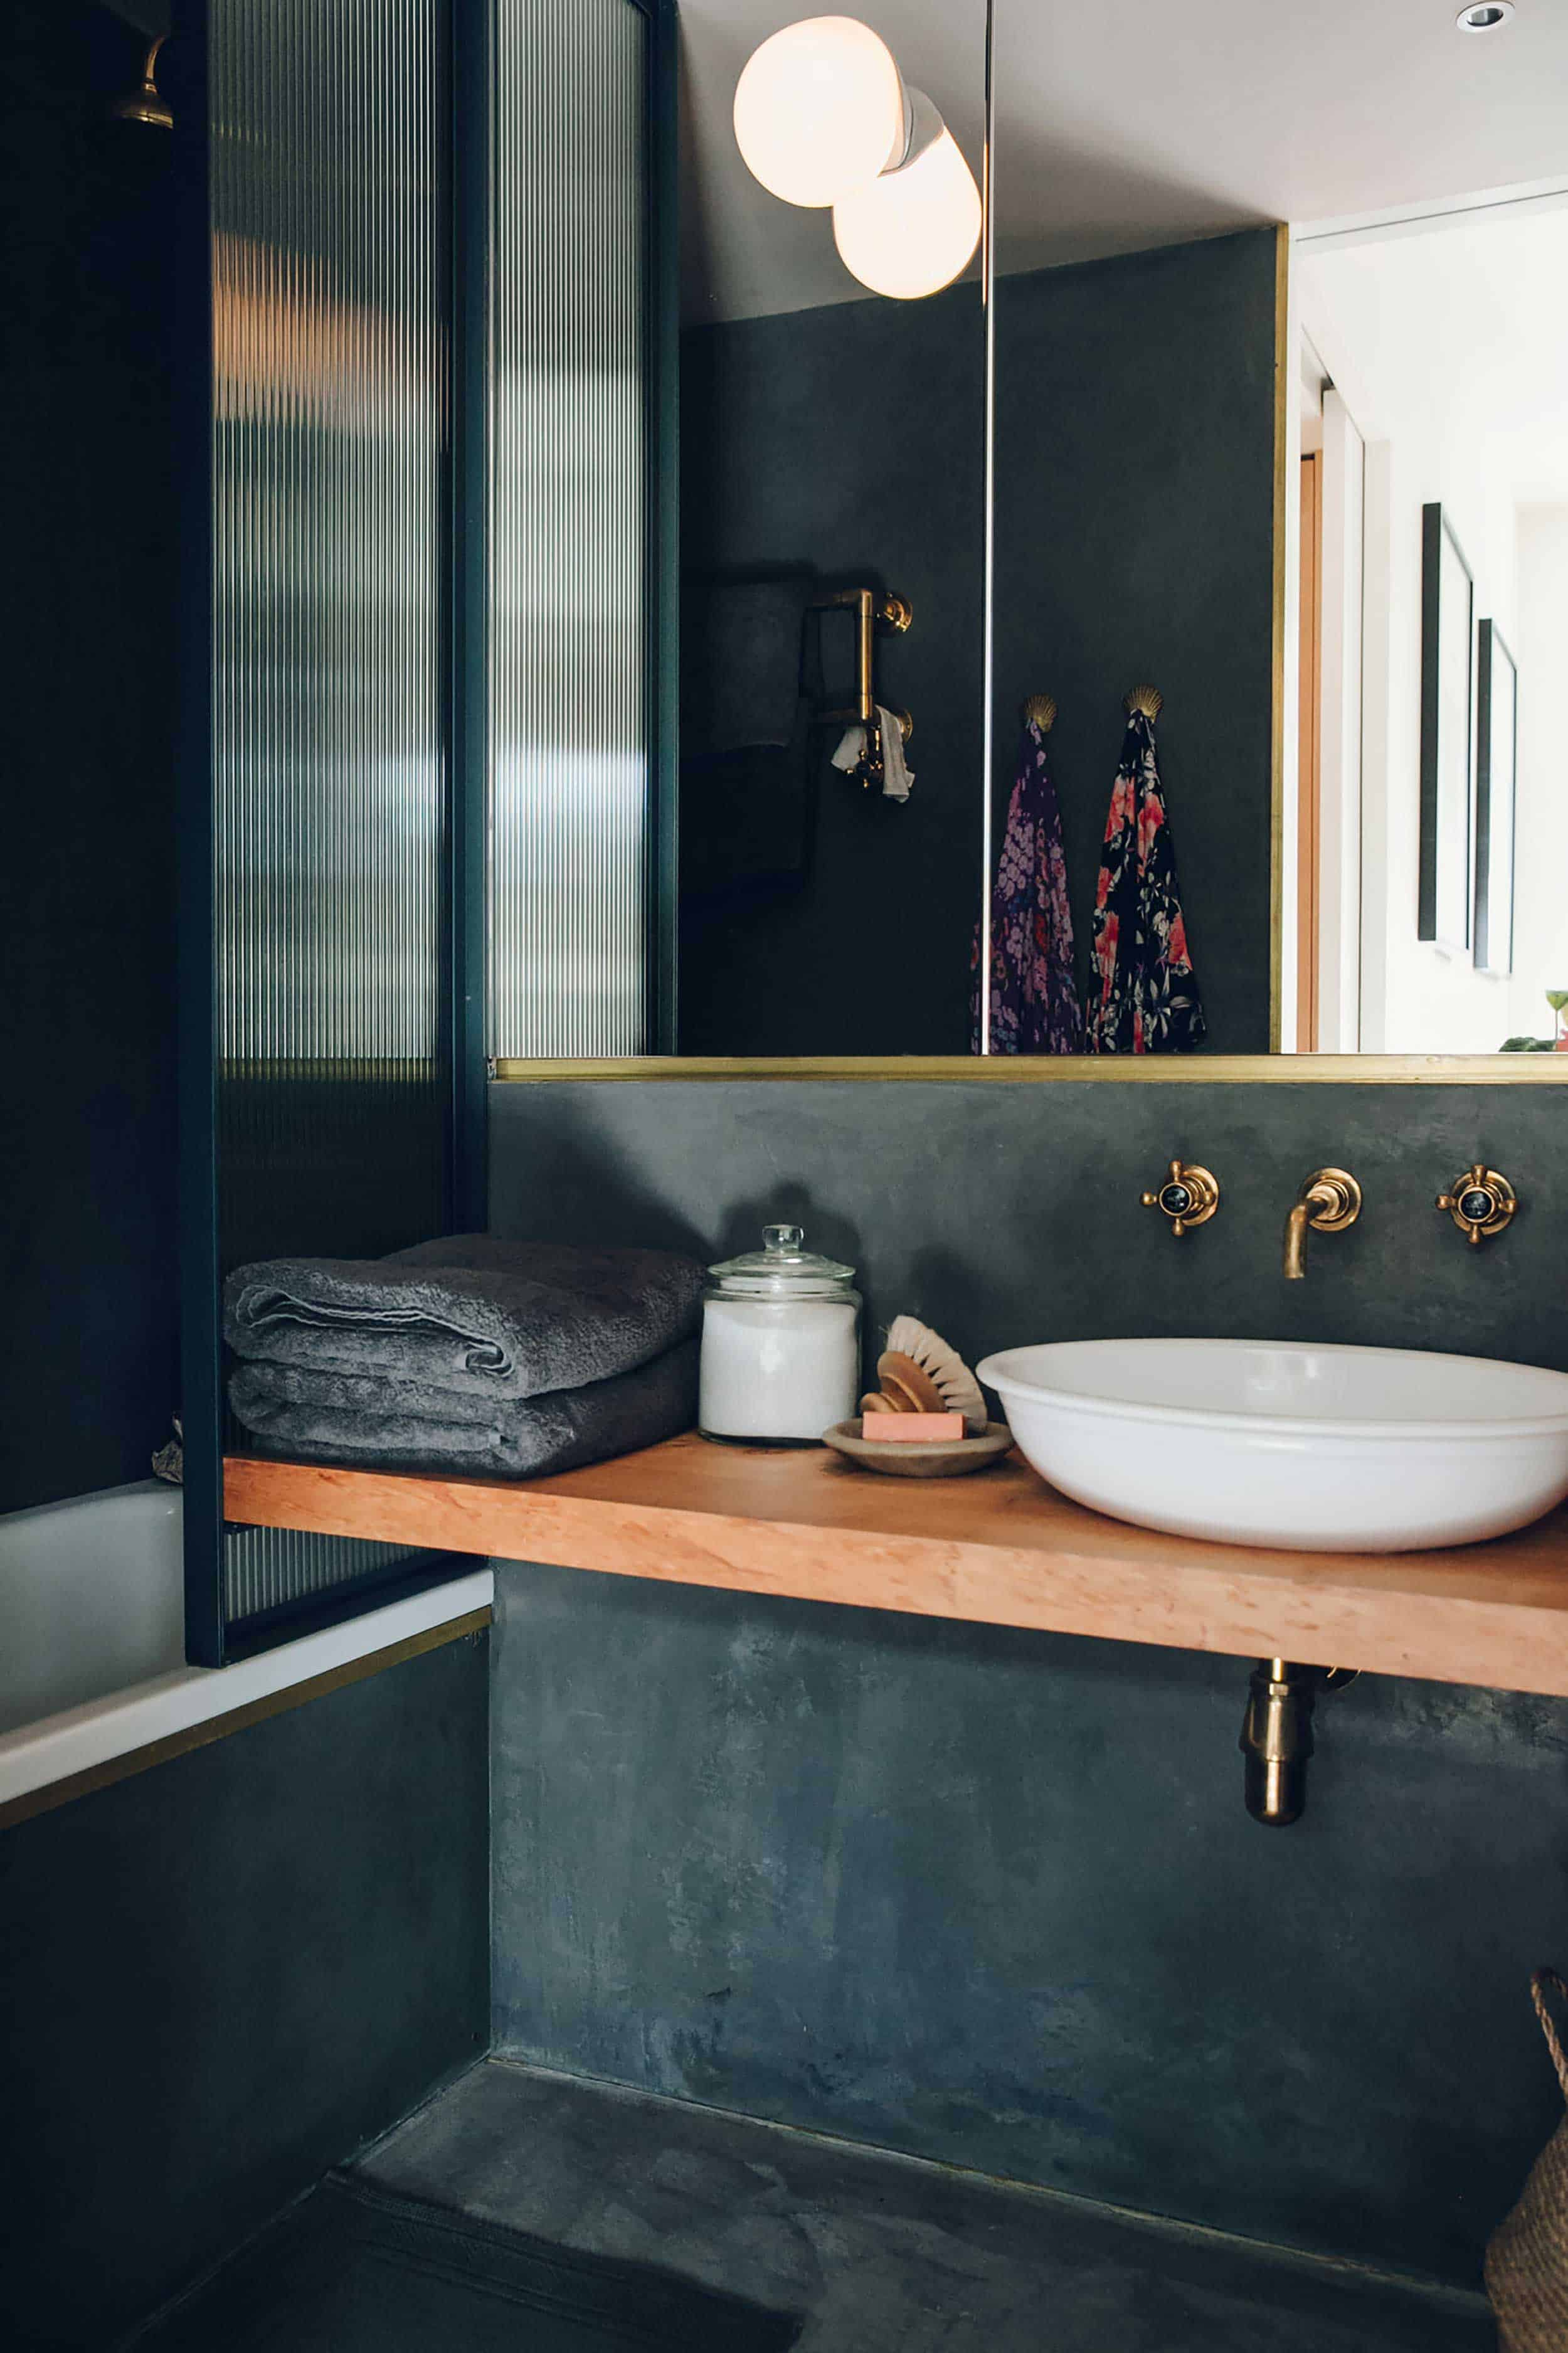 Everything You Need To Know About Tadelakt The Bathroom Trend You Didn T Know You Loved